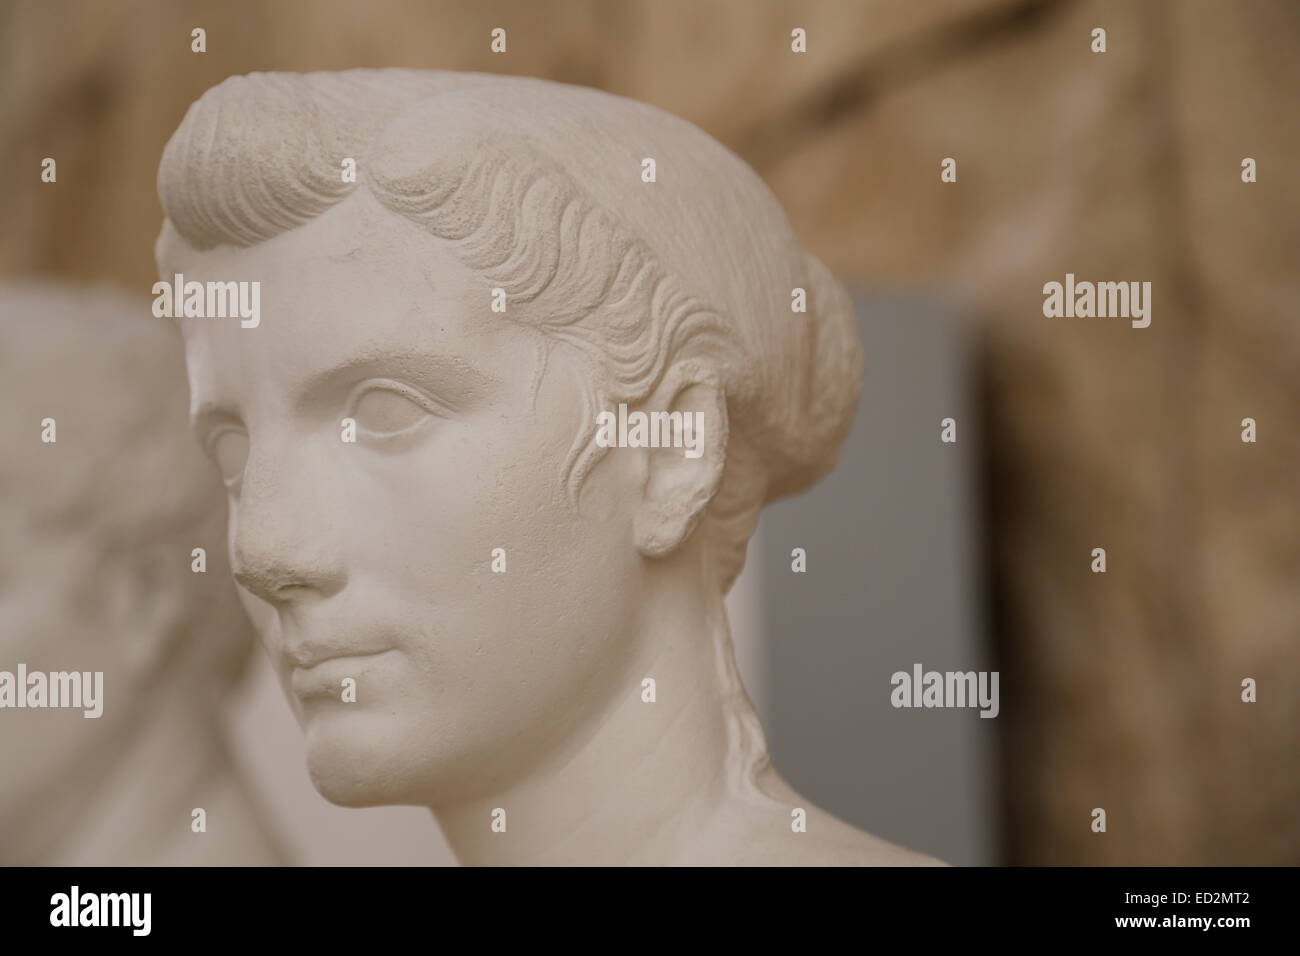 Octavia the Younger (69BC-11BC). Sister of the Emperor Augustus. Fourth wife of Mark Antony. Bus of Octavia Minor. - Stock Image